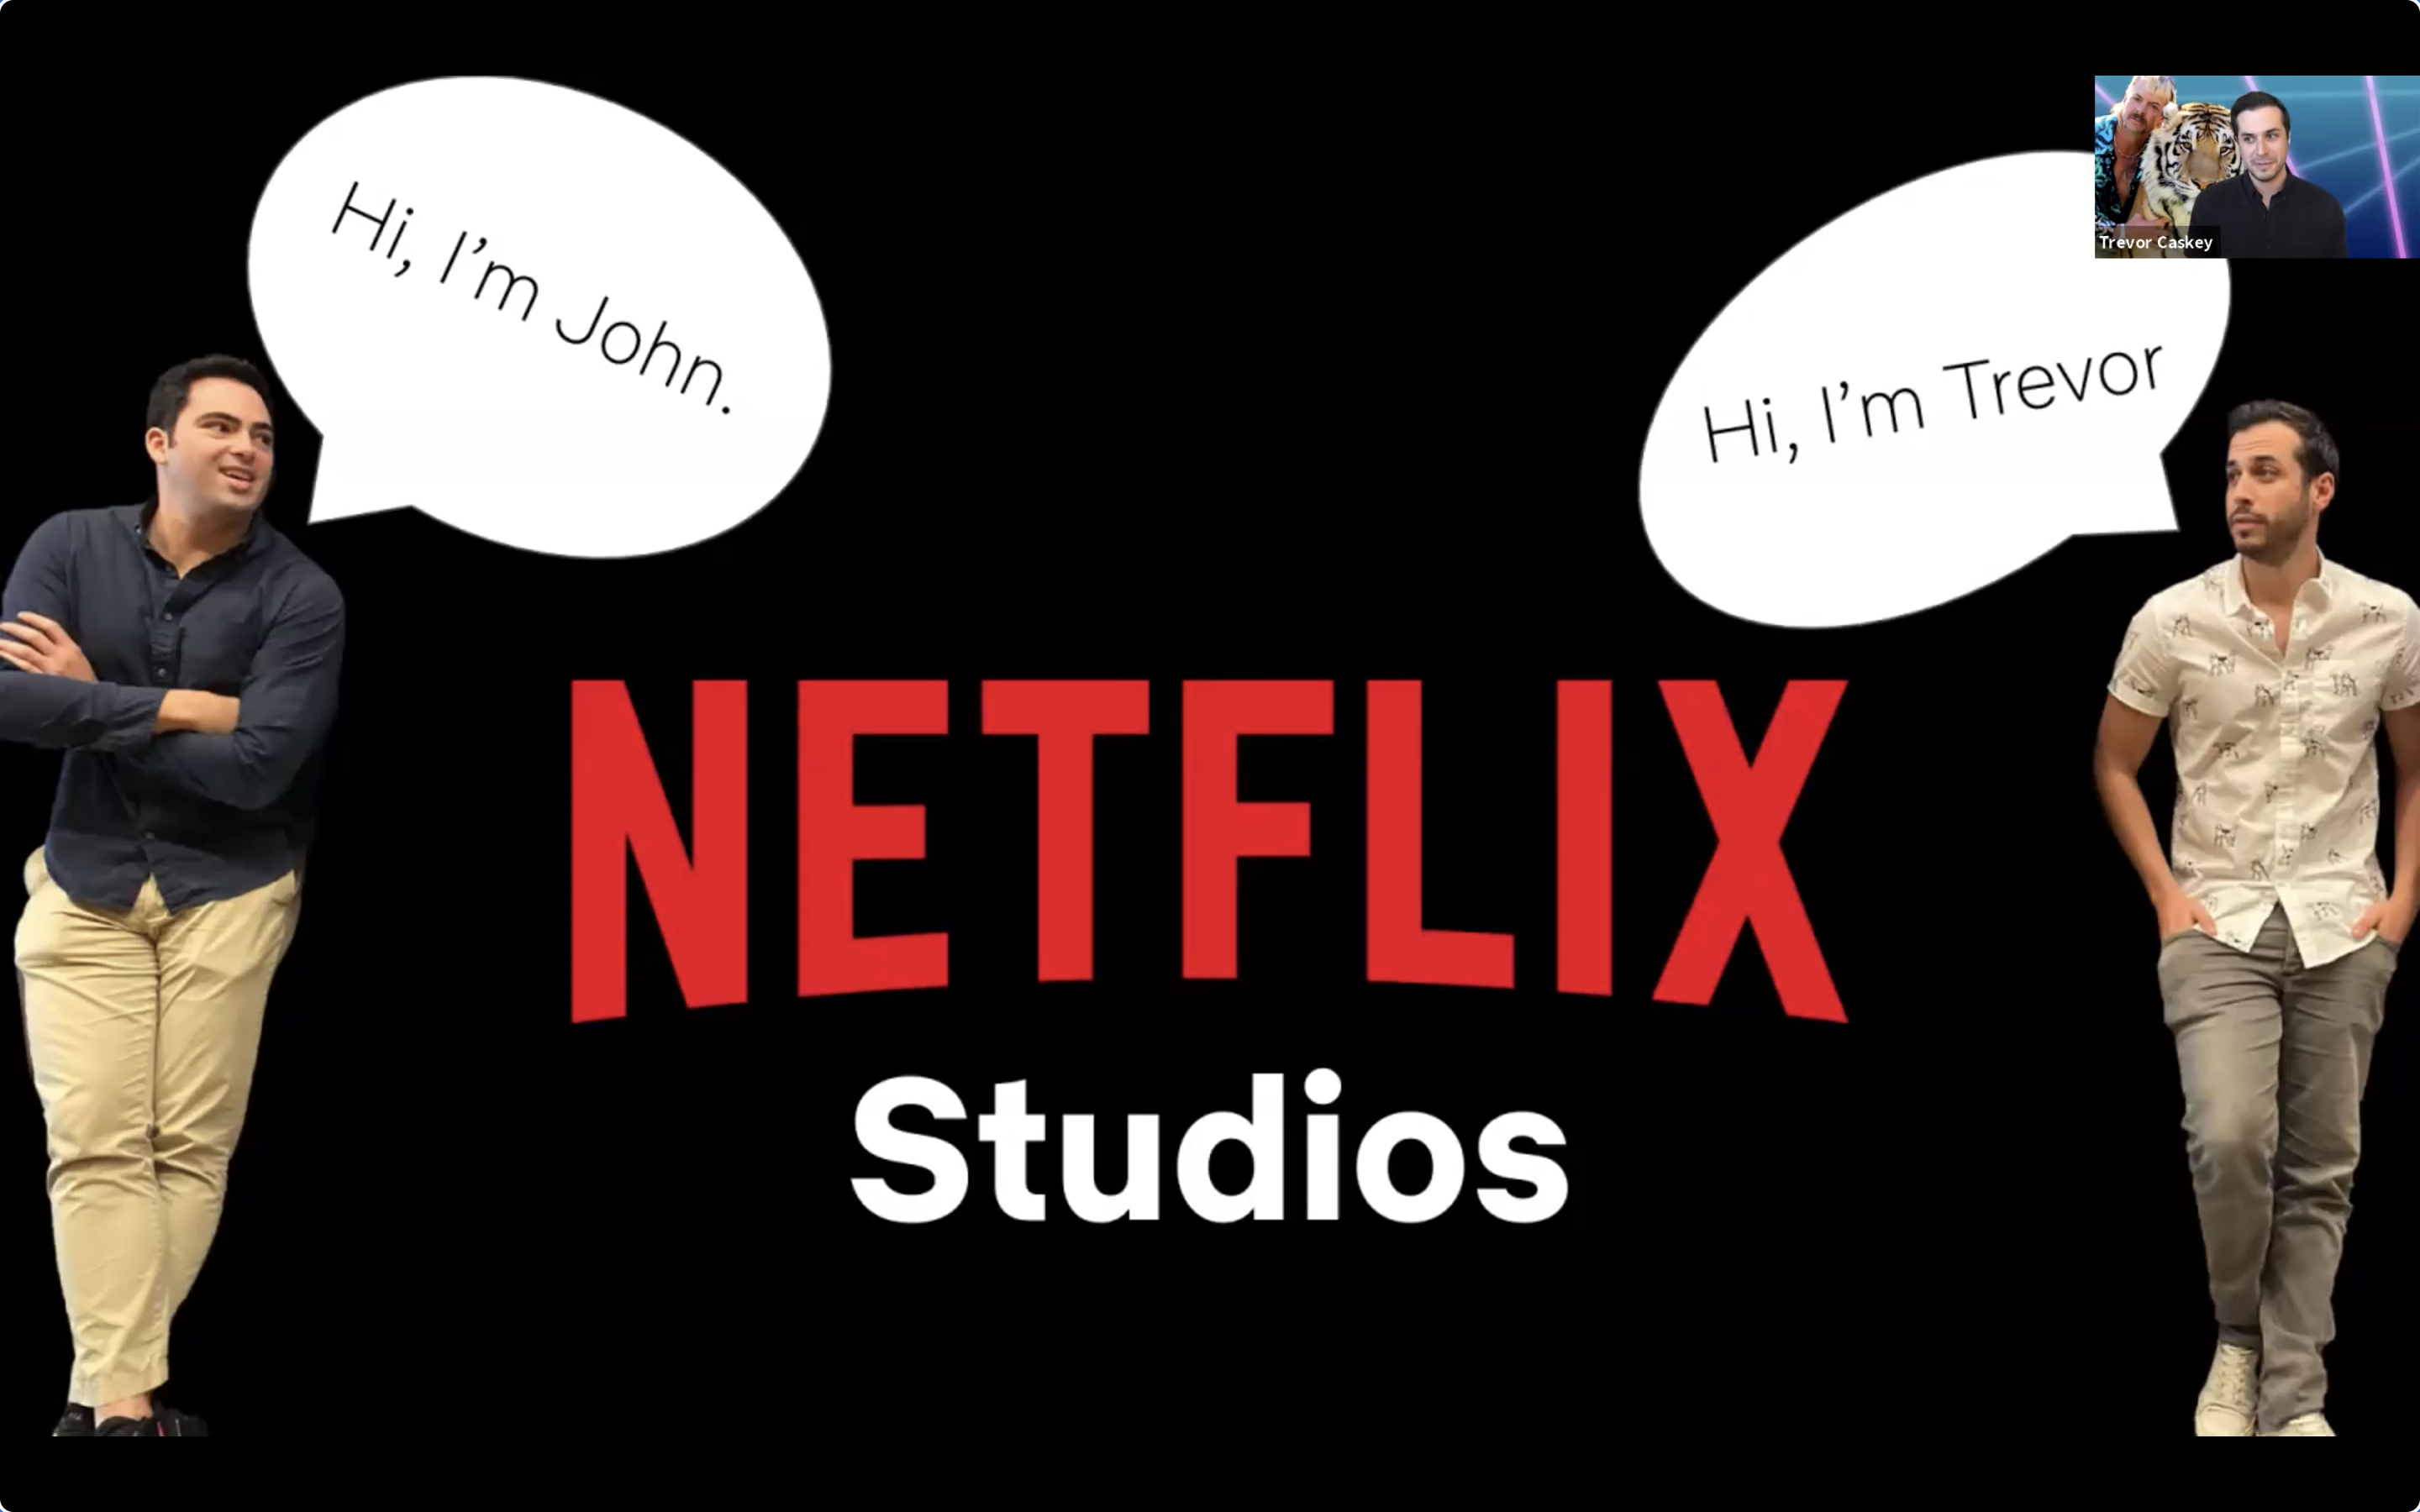 How Netflix Studios Adds Human Touch to Blended Learning Experience with PlusPlus